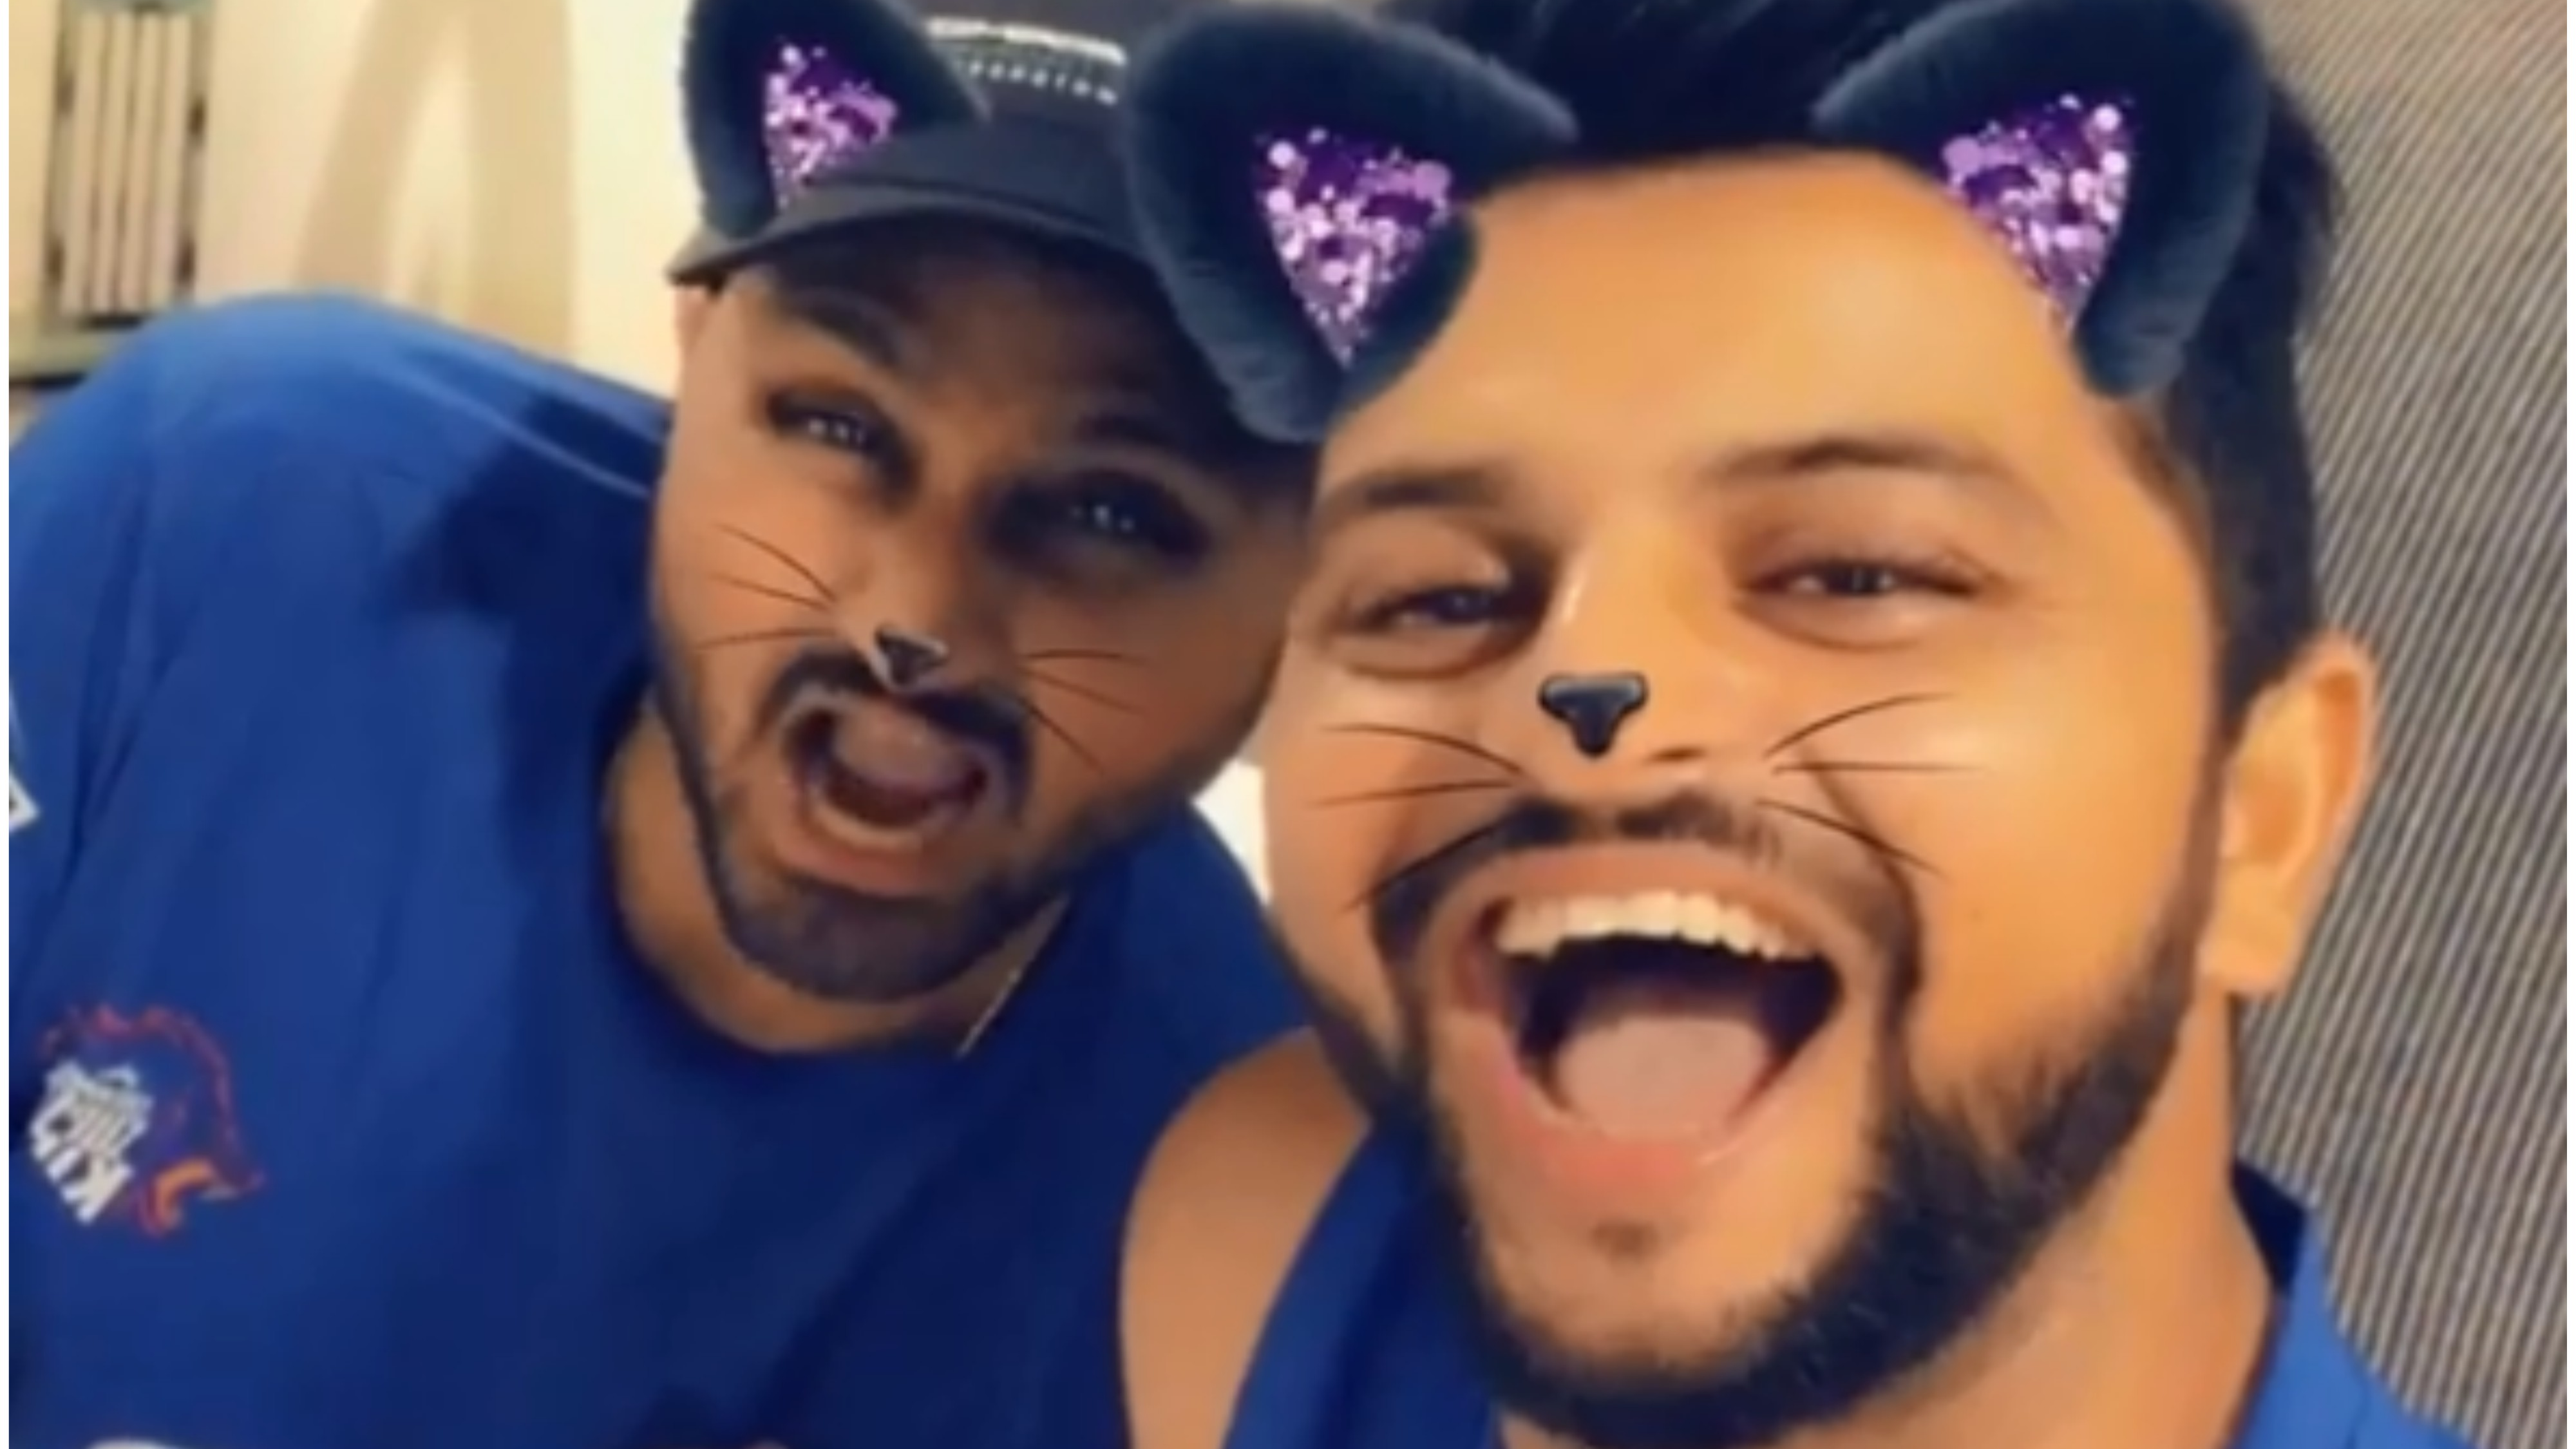 IPL 2018: Watch – Harbhajan Singh and Suresh Raina's hilarious cat imitation